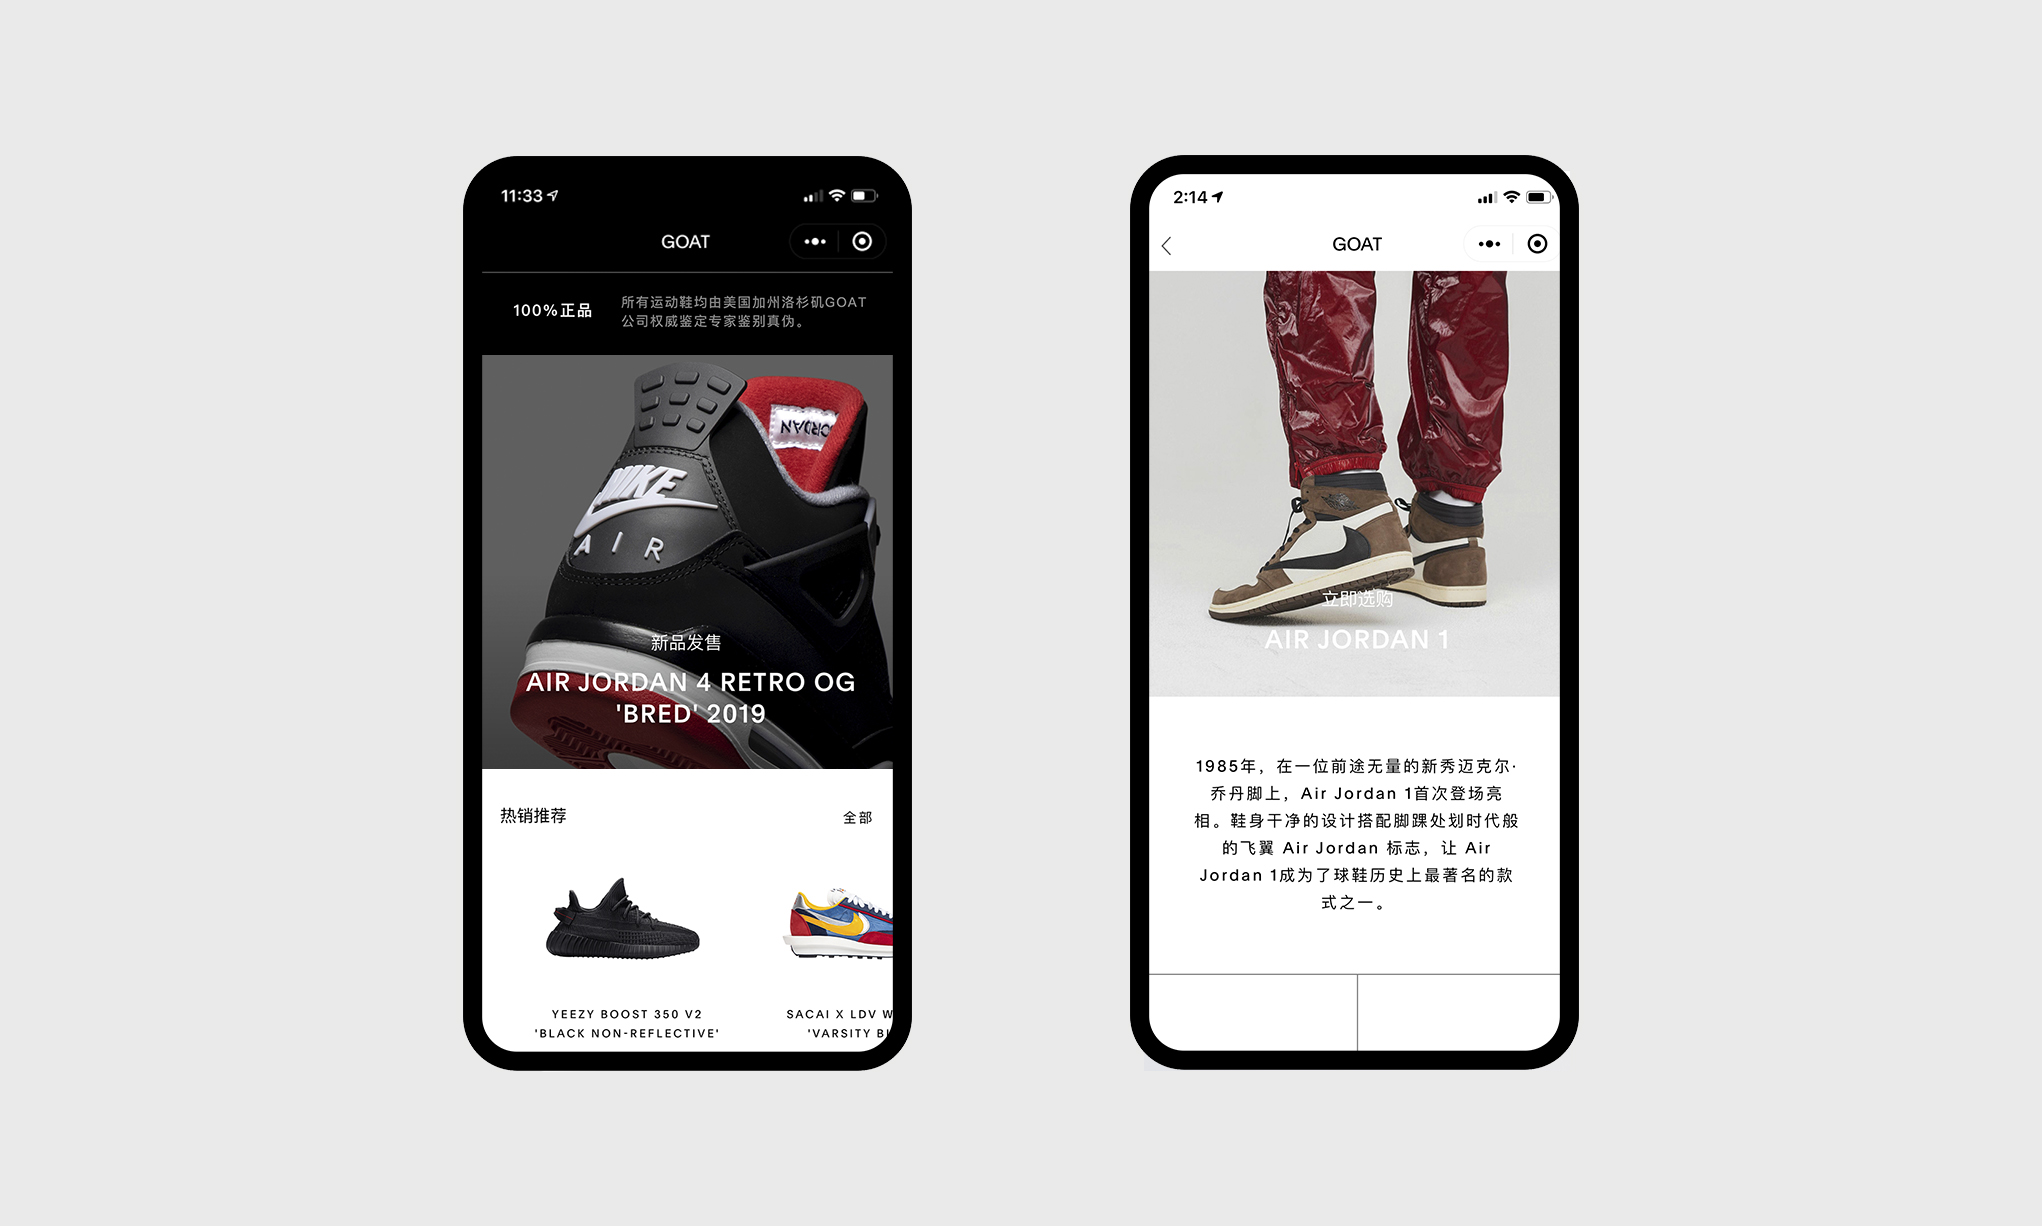 7271e84b After $100 Million Foot Locker Investment, Sneaker Marketplace GOAT  Launches New App in China